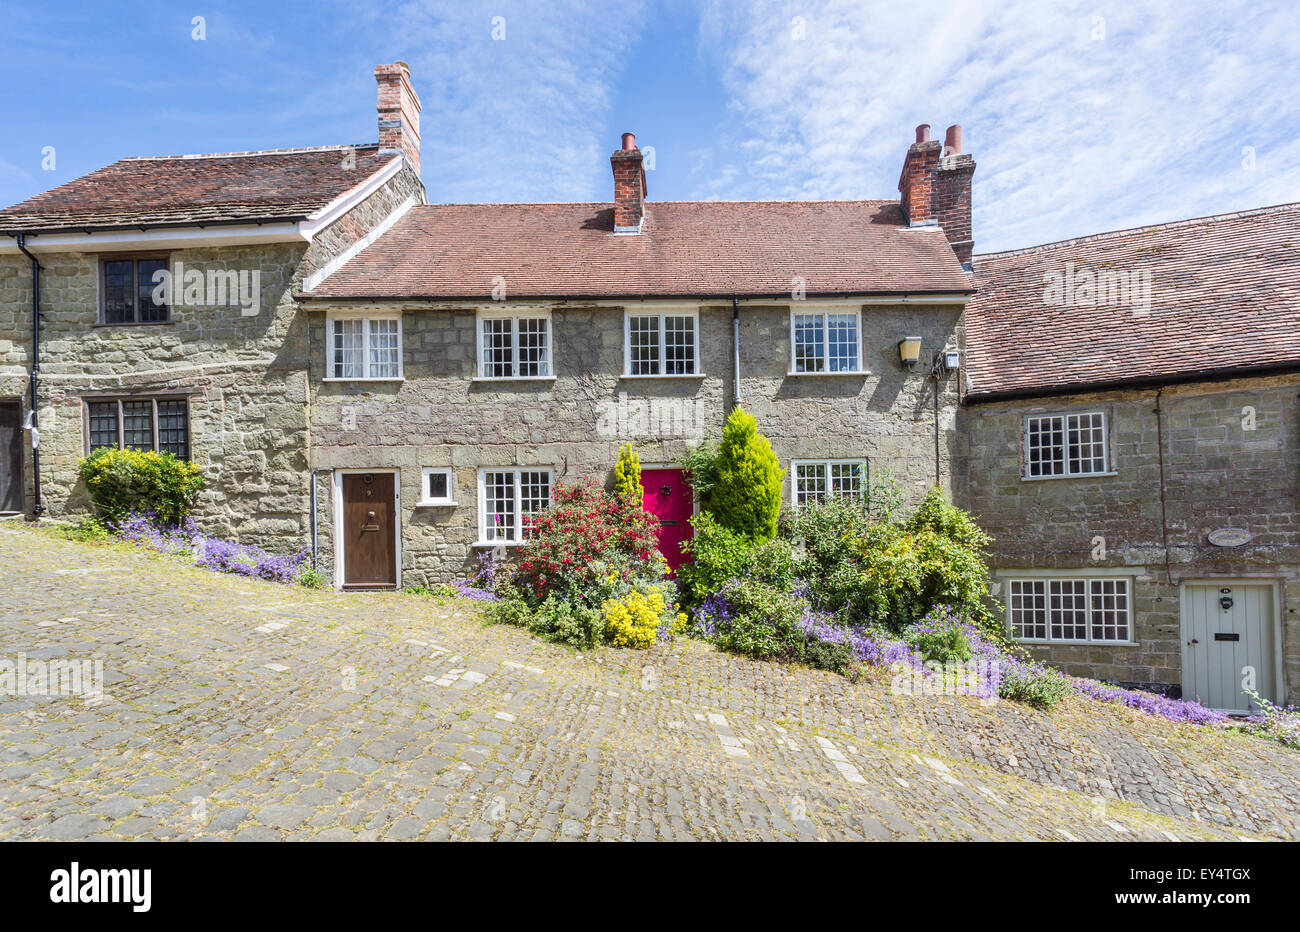 Local style stone cottage with red door in Gold Hill, Shaftesbury, Dorset, UK in summer, location for the Ridley - Stock Image